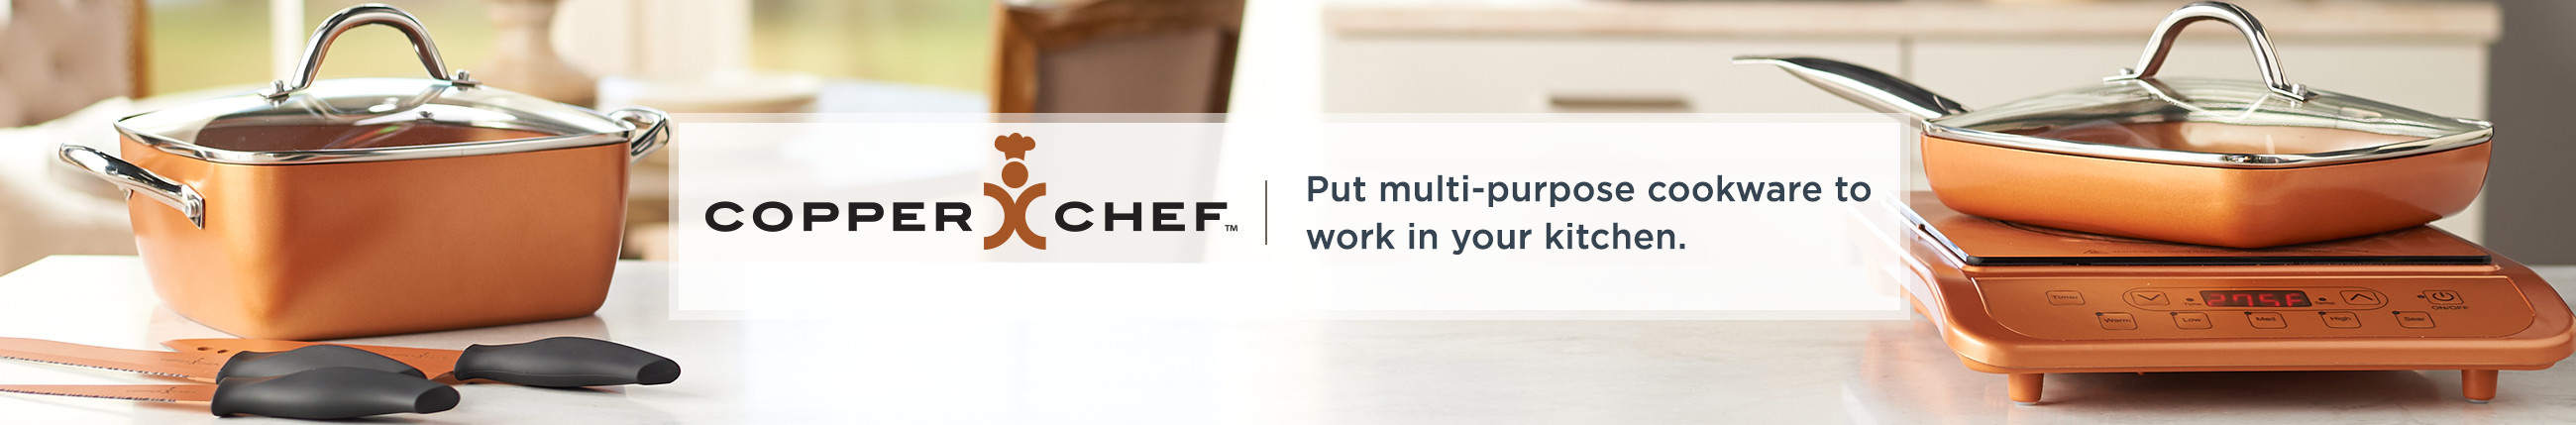 Copper Chef ,  Put multi-purpose cookware to work in your kitchen